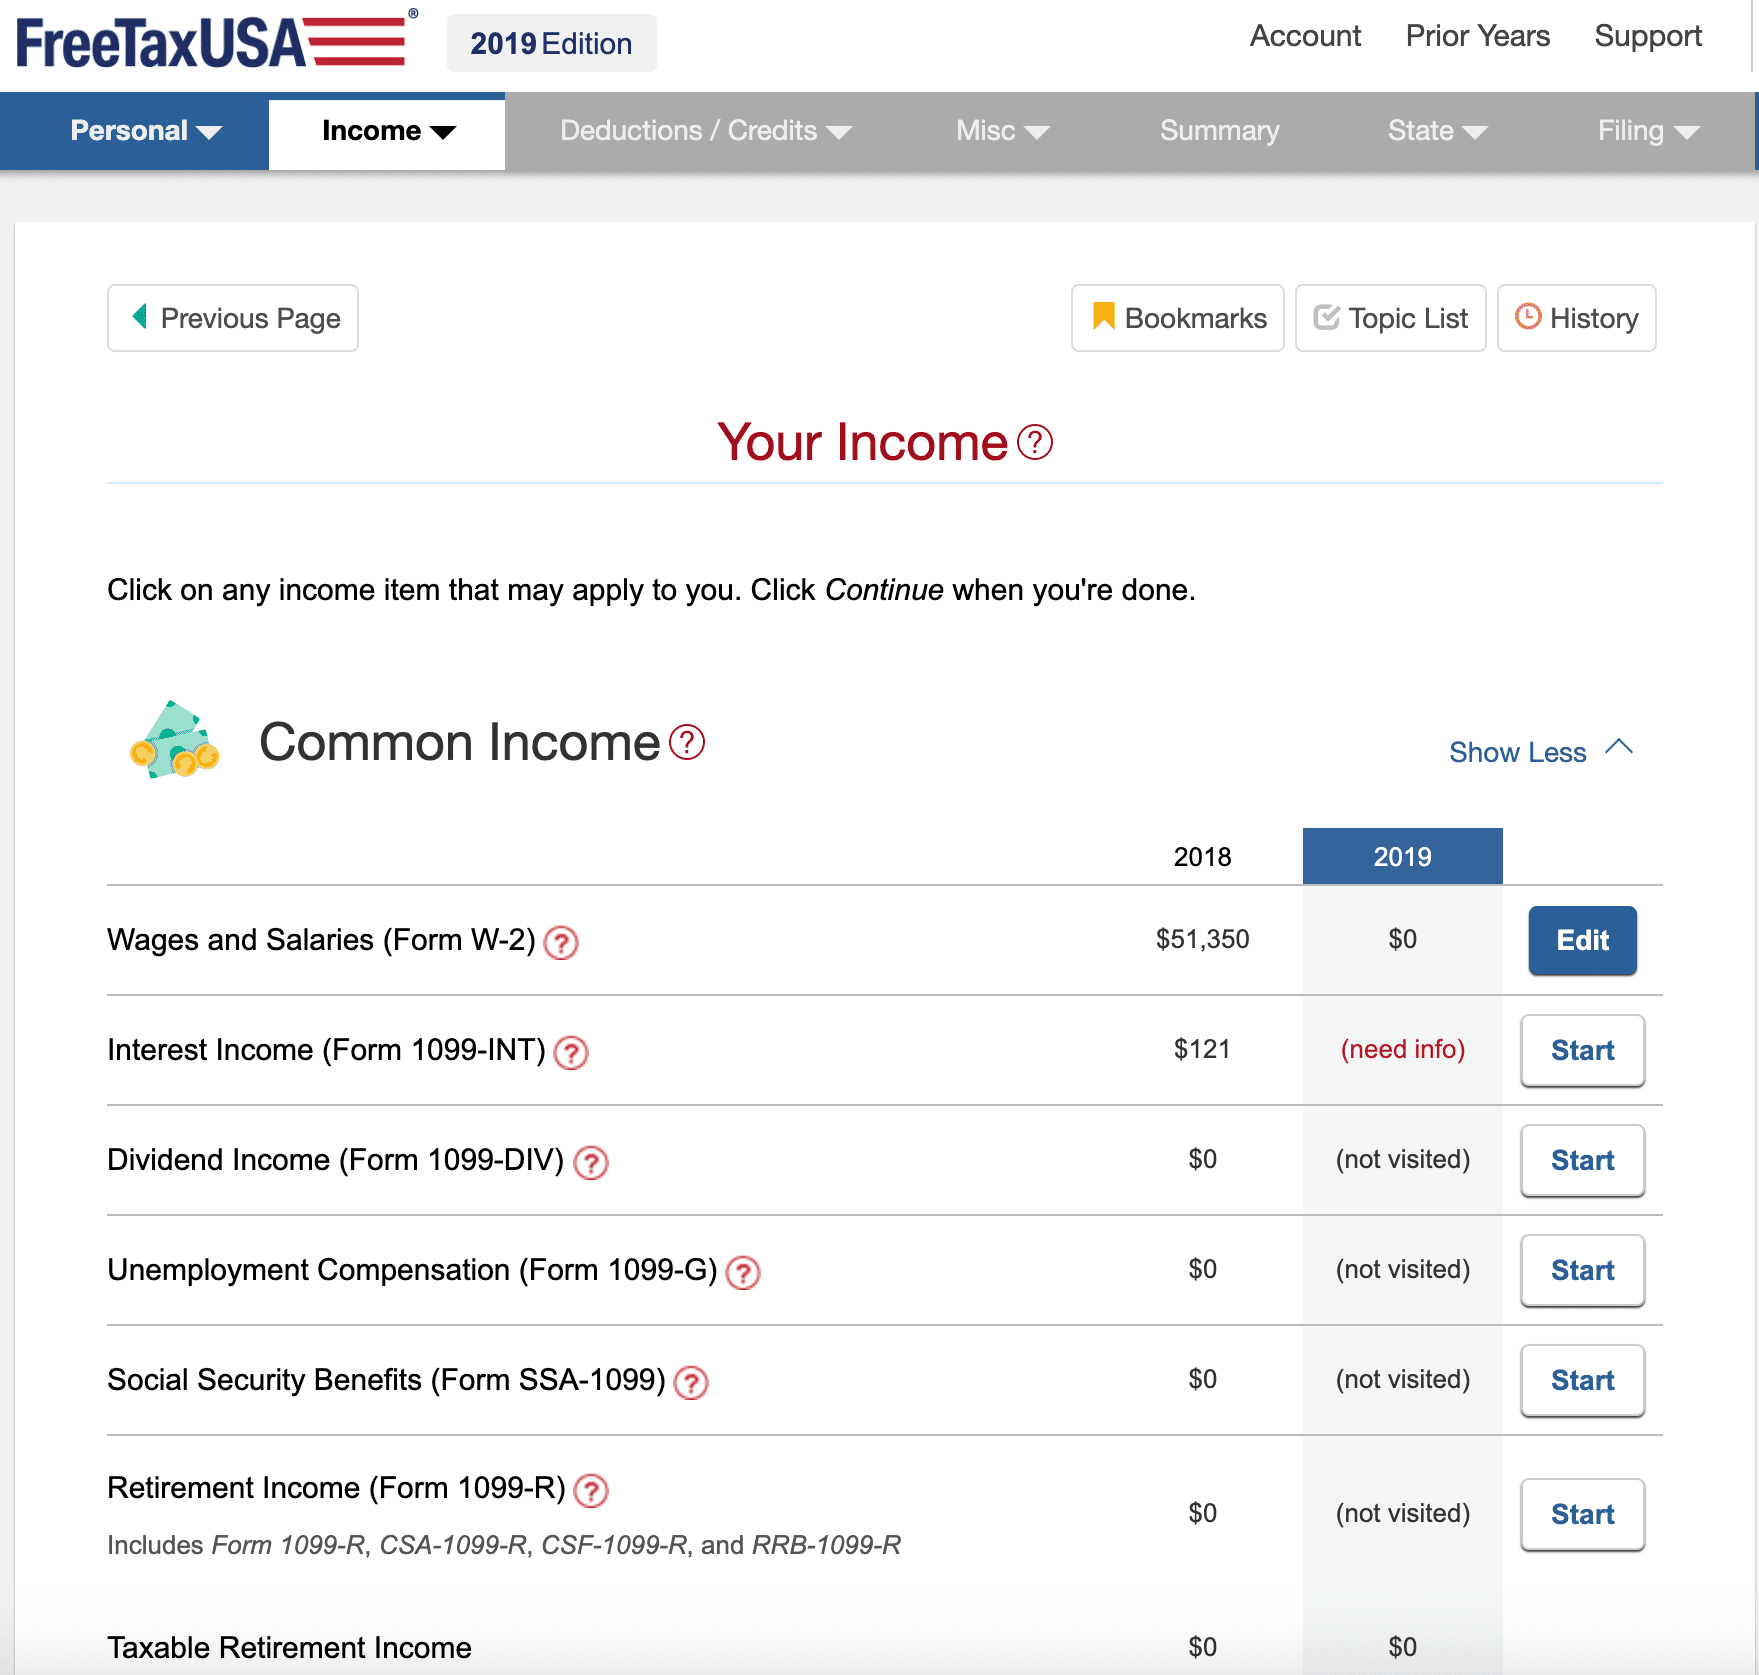 FreeTaxUSA Summary